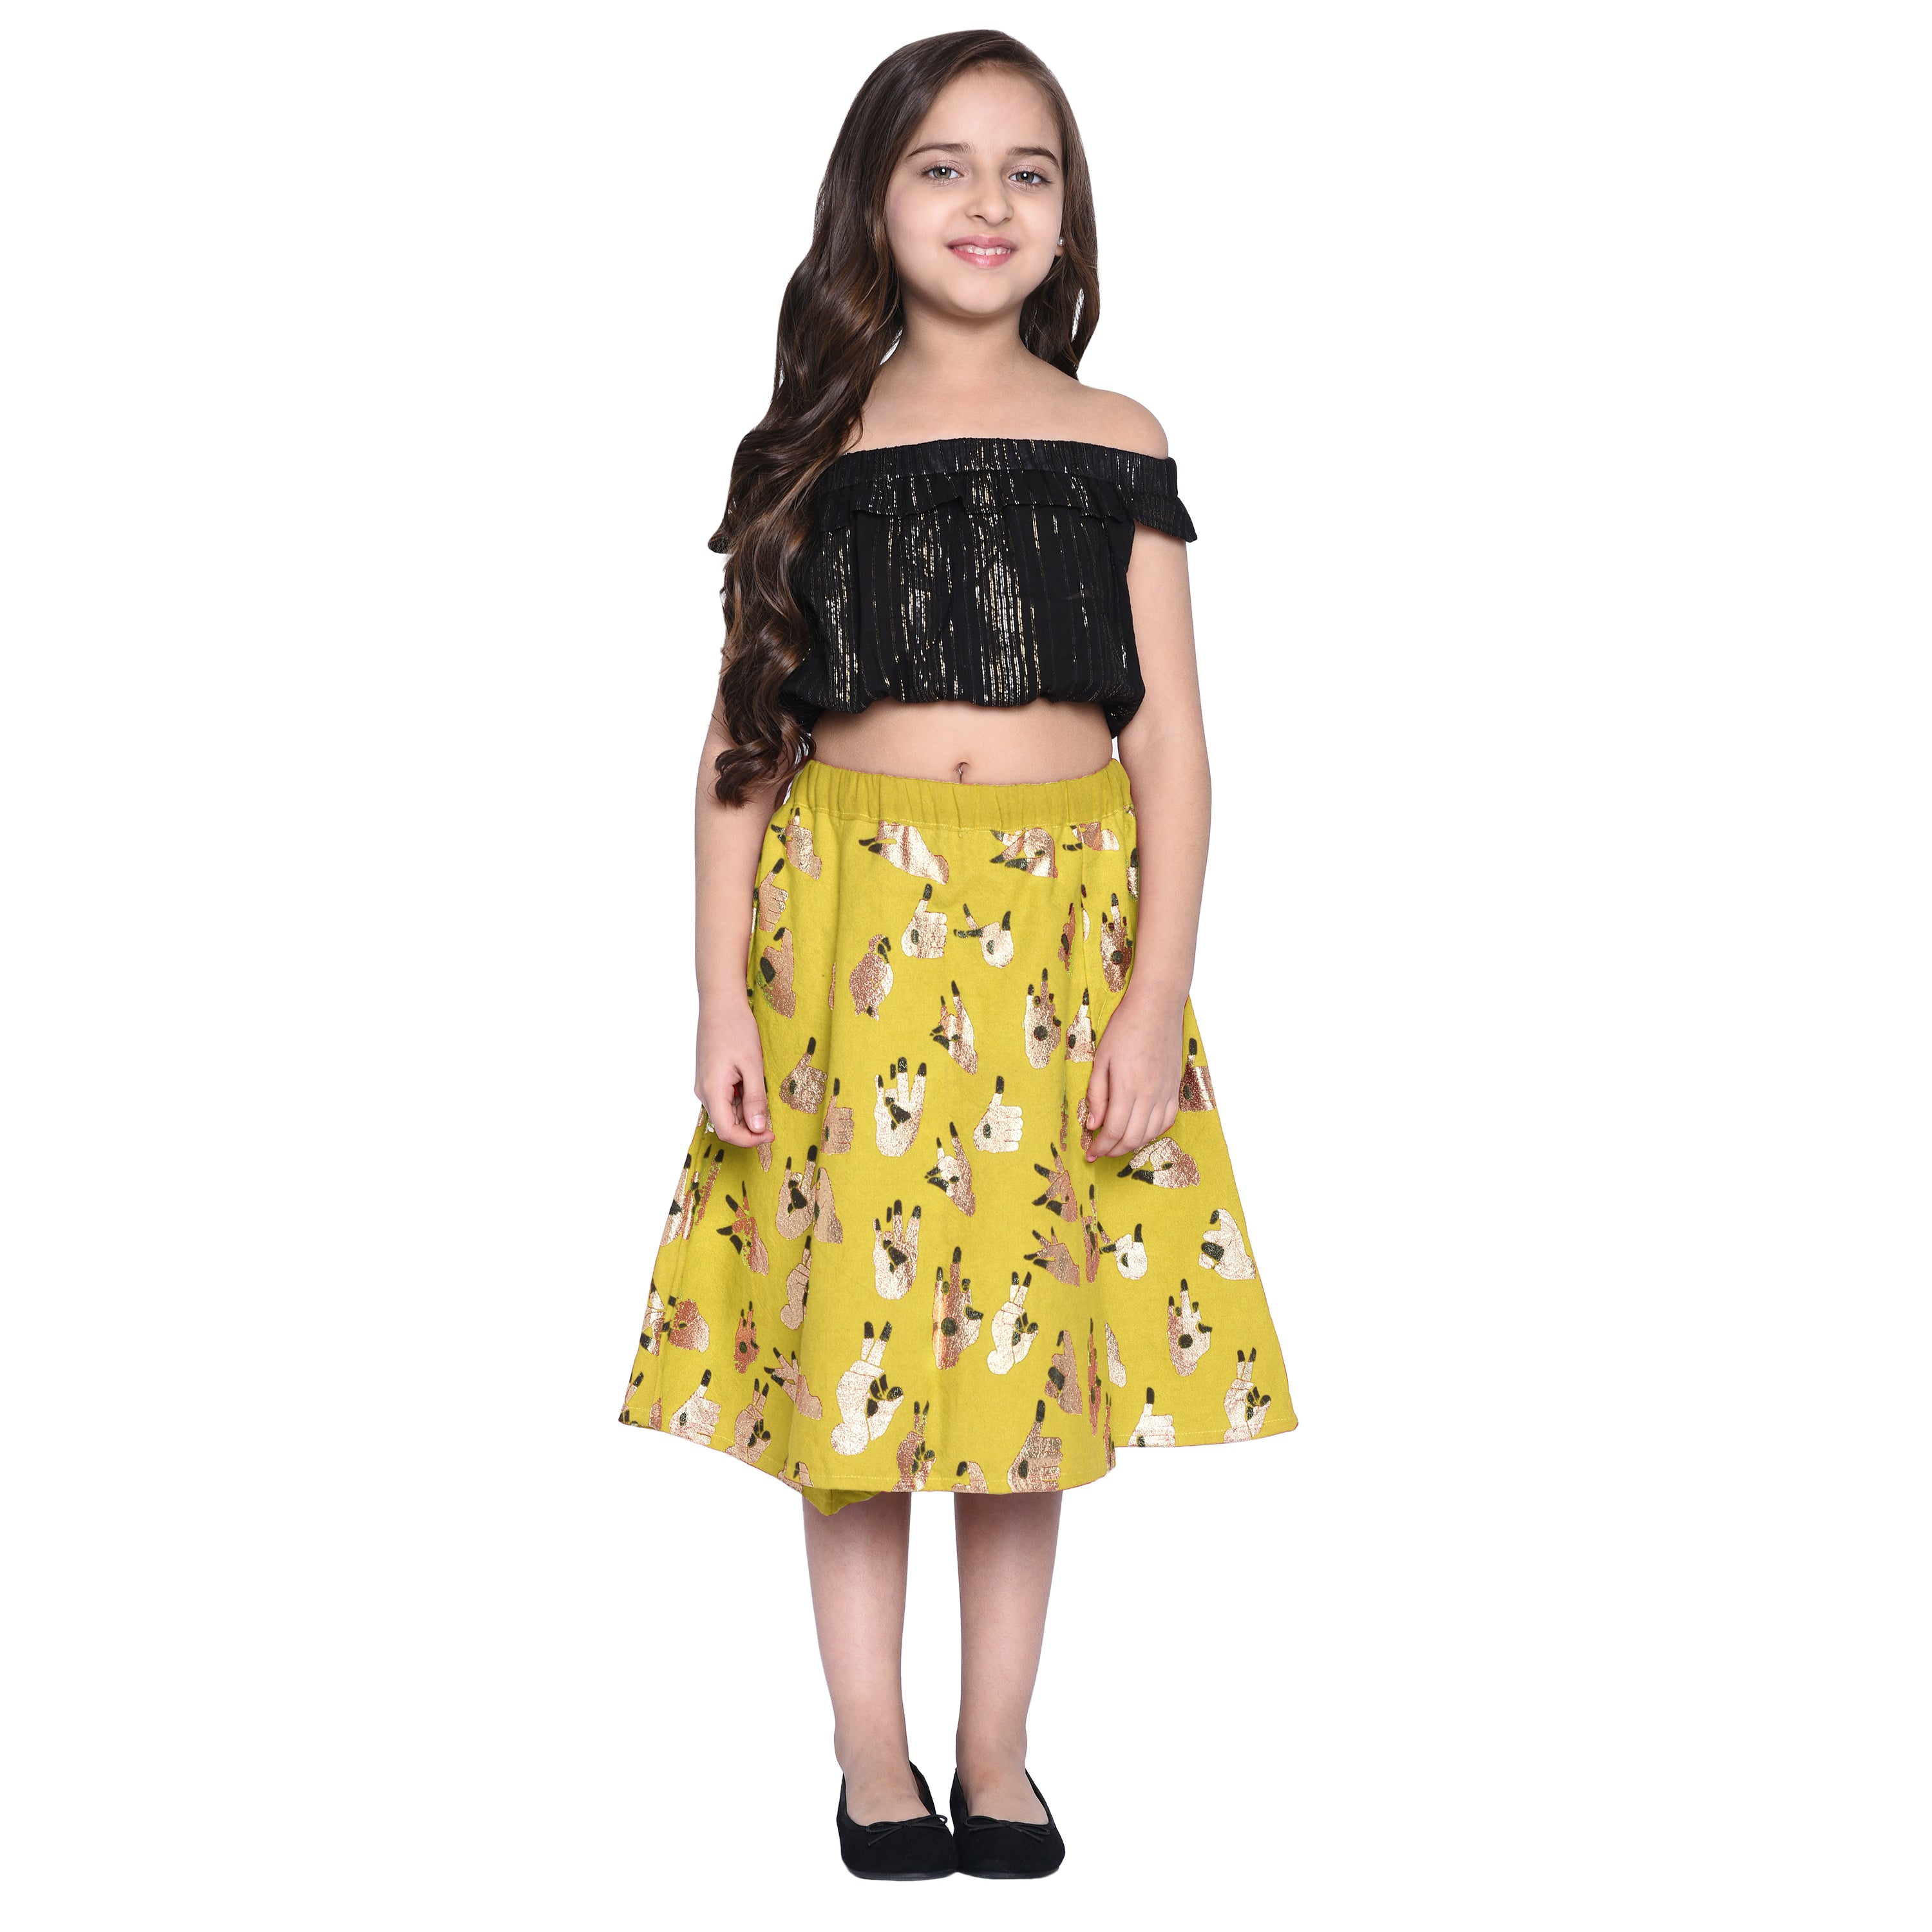 Klara Yellow Crop Top & Skirt Set for Girls